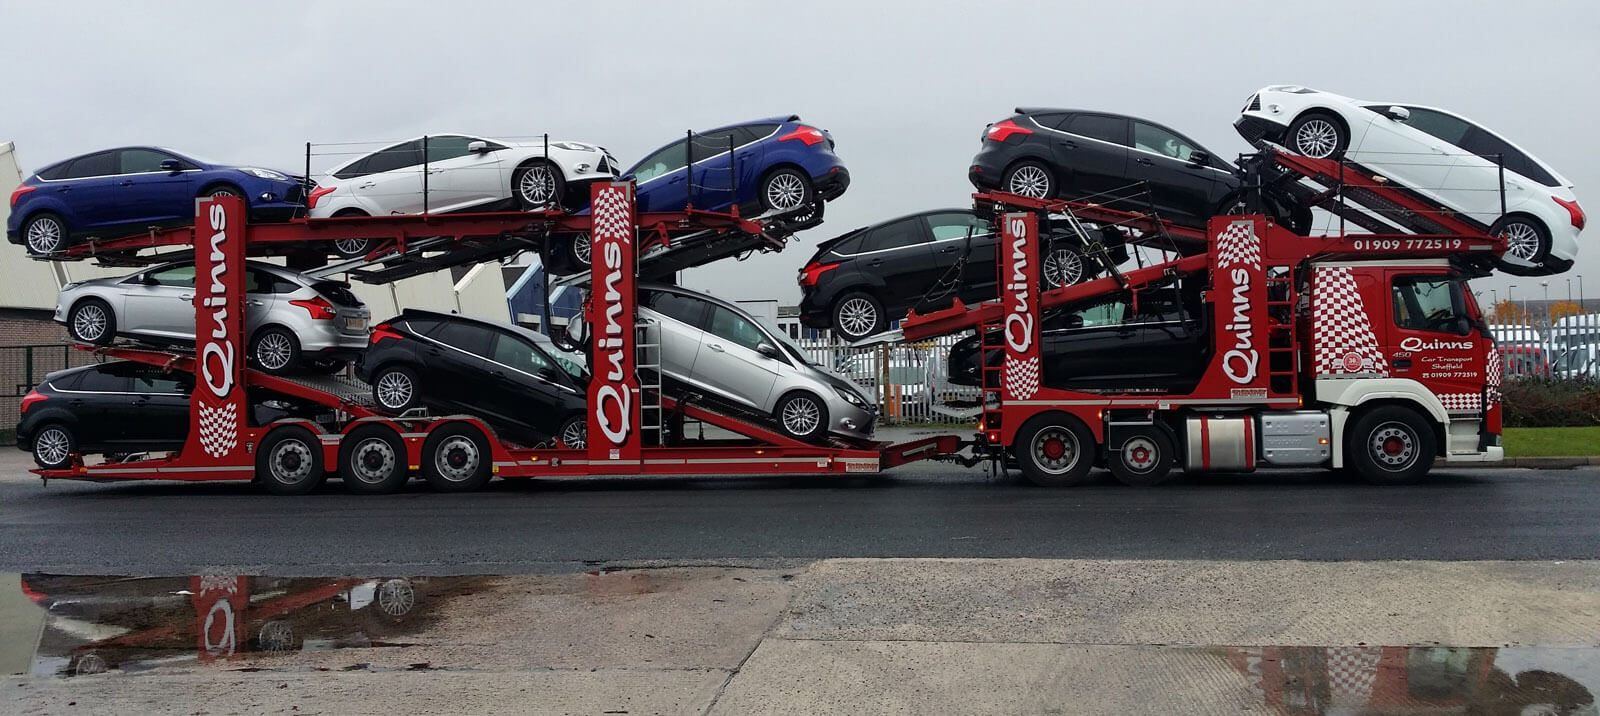 Car Shipping: Transporting Cars: How It Works